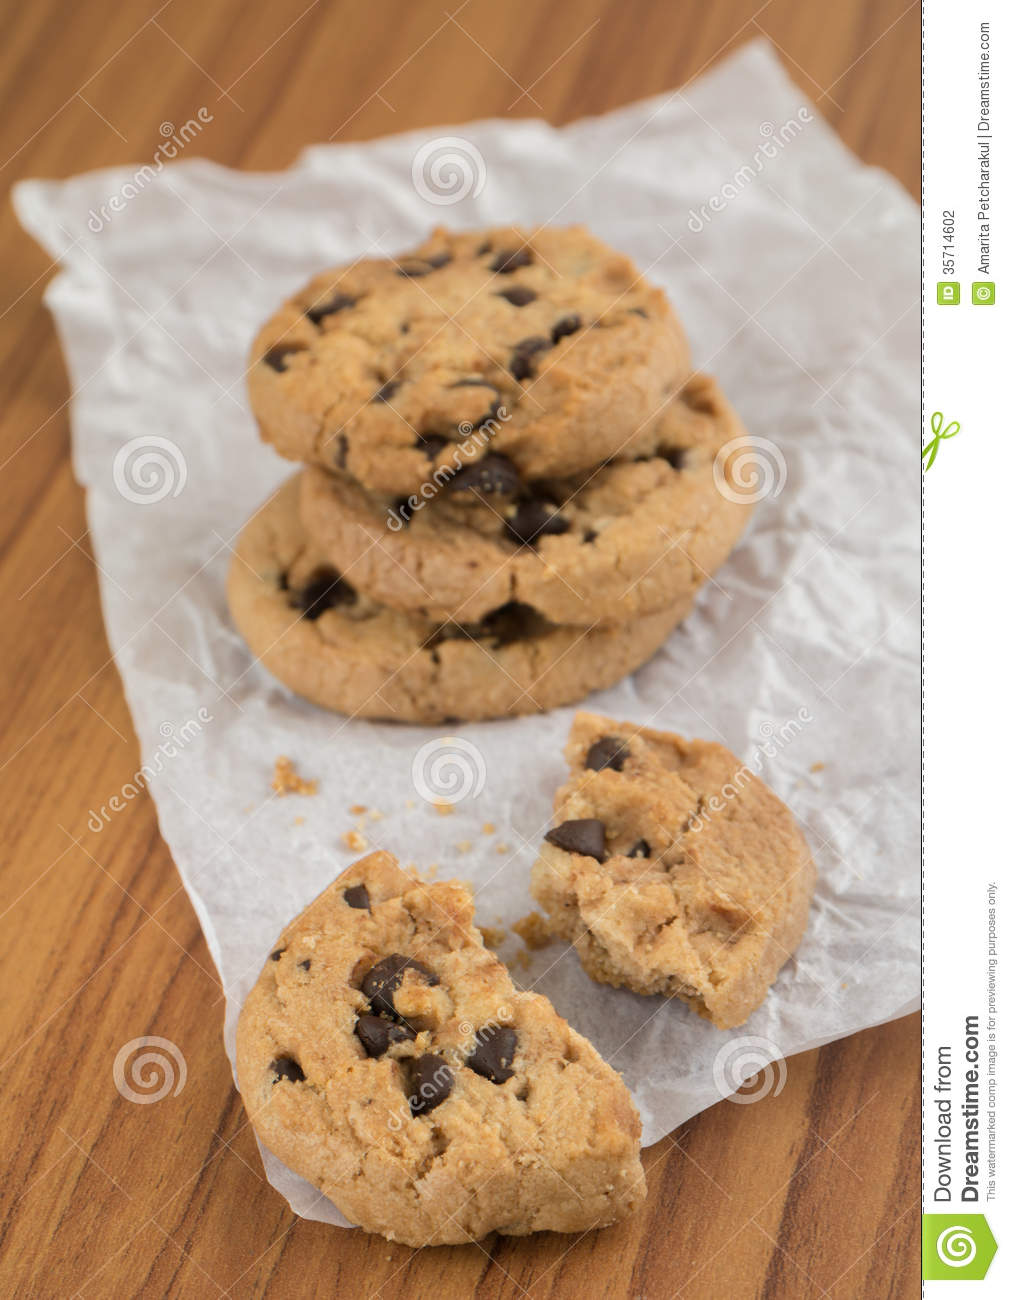 essay on how to make chocolate chip cookies Demonstration speech outline chocolate chip hazelnut cookies topic: how to make chocolate chip hazelnut cookies i introduction a attention- getter: think about to.